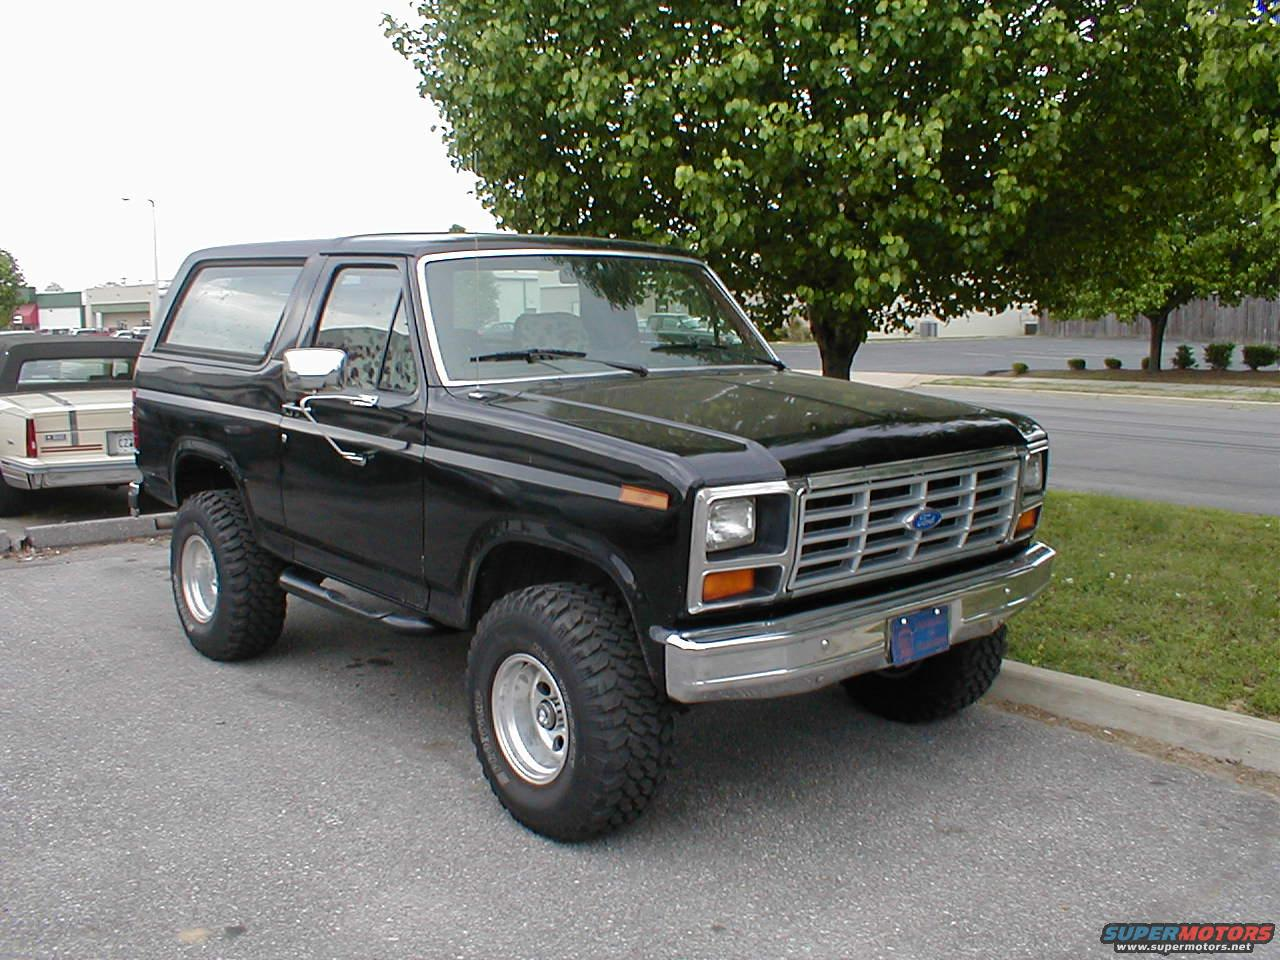 1983 Ford bronco picture gallery